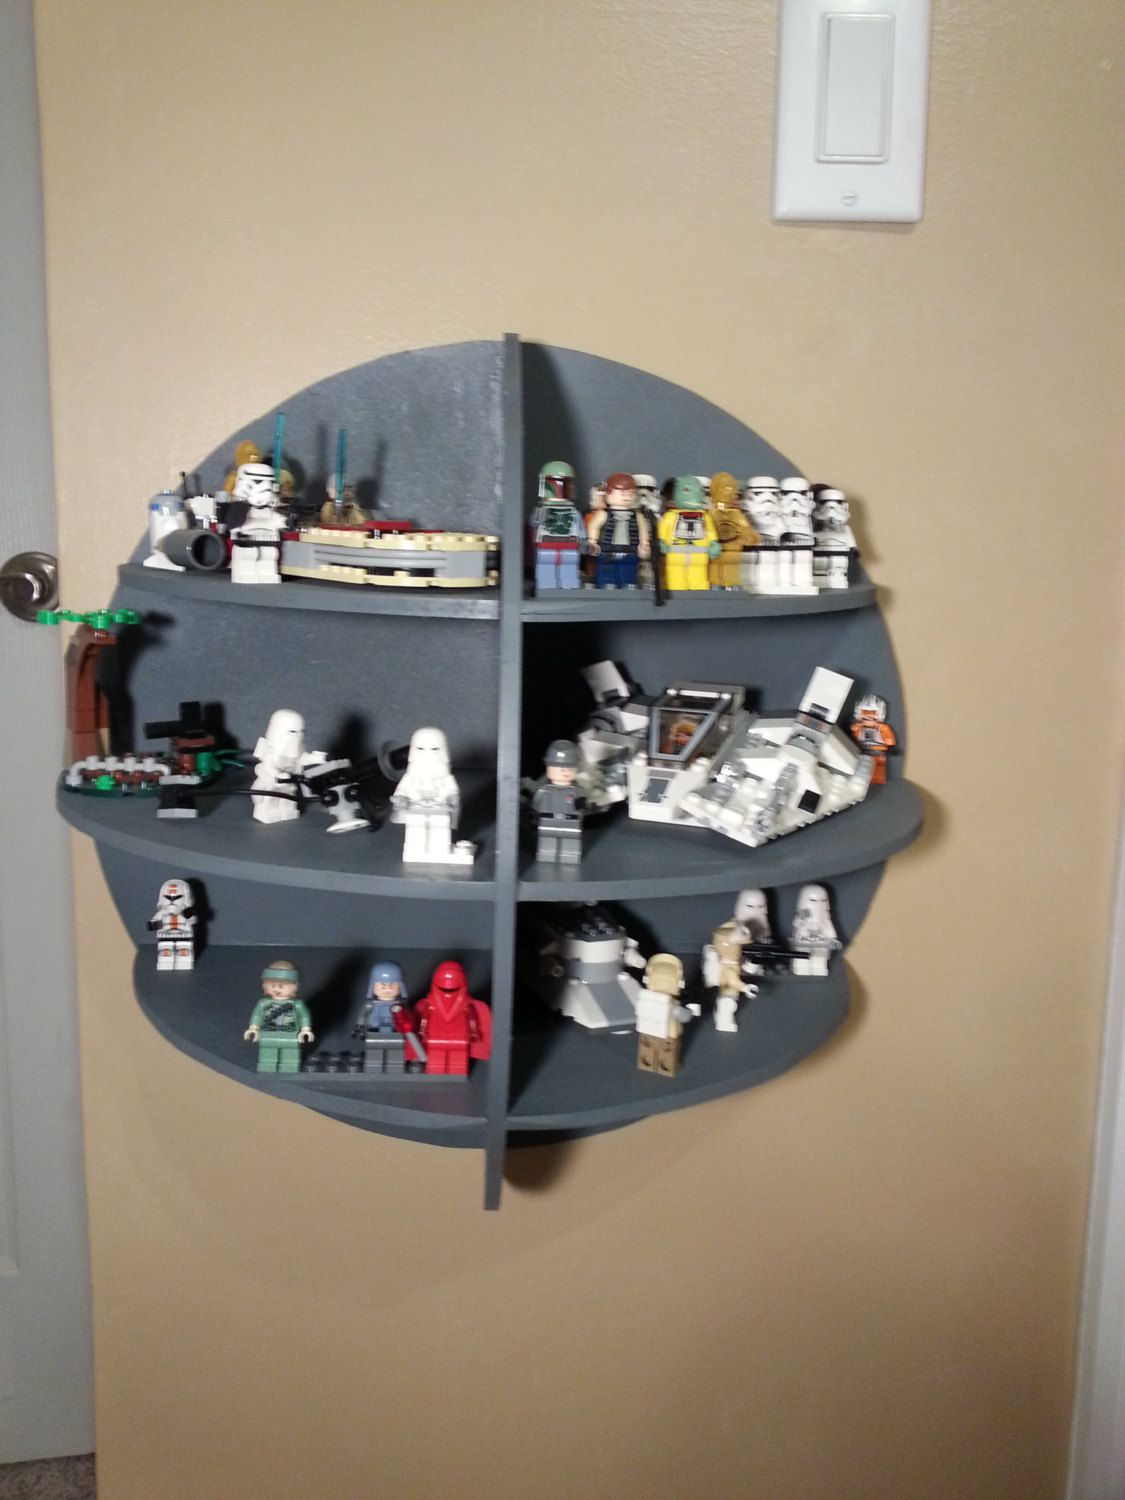 lego star wars death star display shelf by builtbybodiford on etsy furniture pinterest. Black Bedroom Furniture Sets. Home Design Ideas